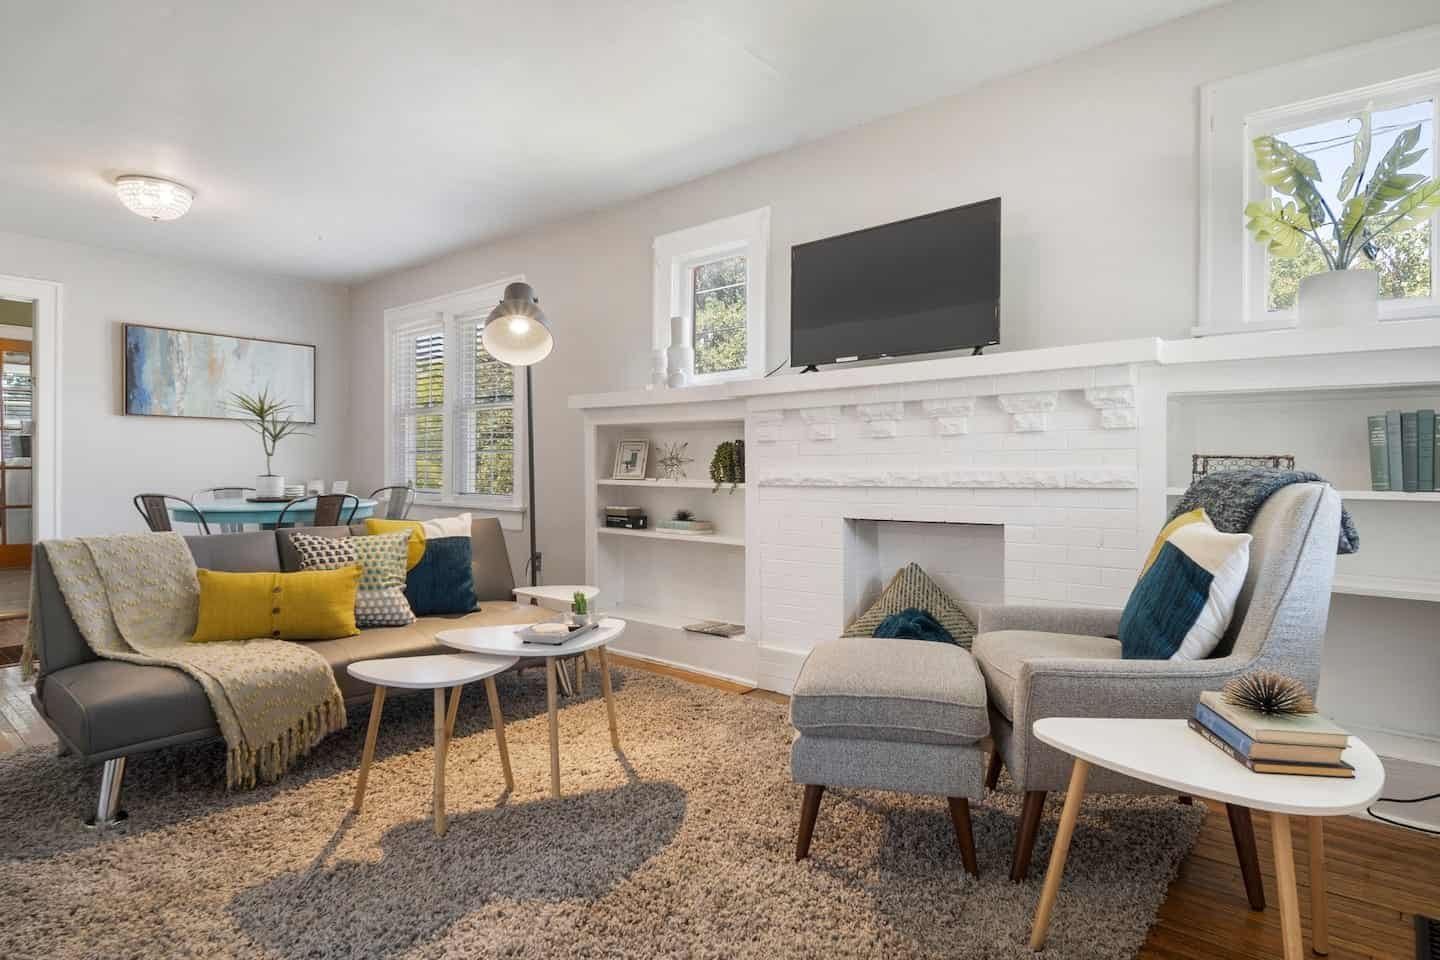 Image of Airbnb rental in Tulsa, Oklahoma